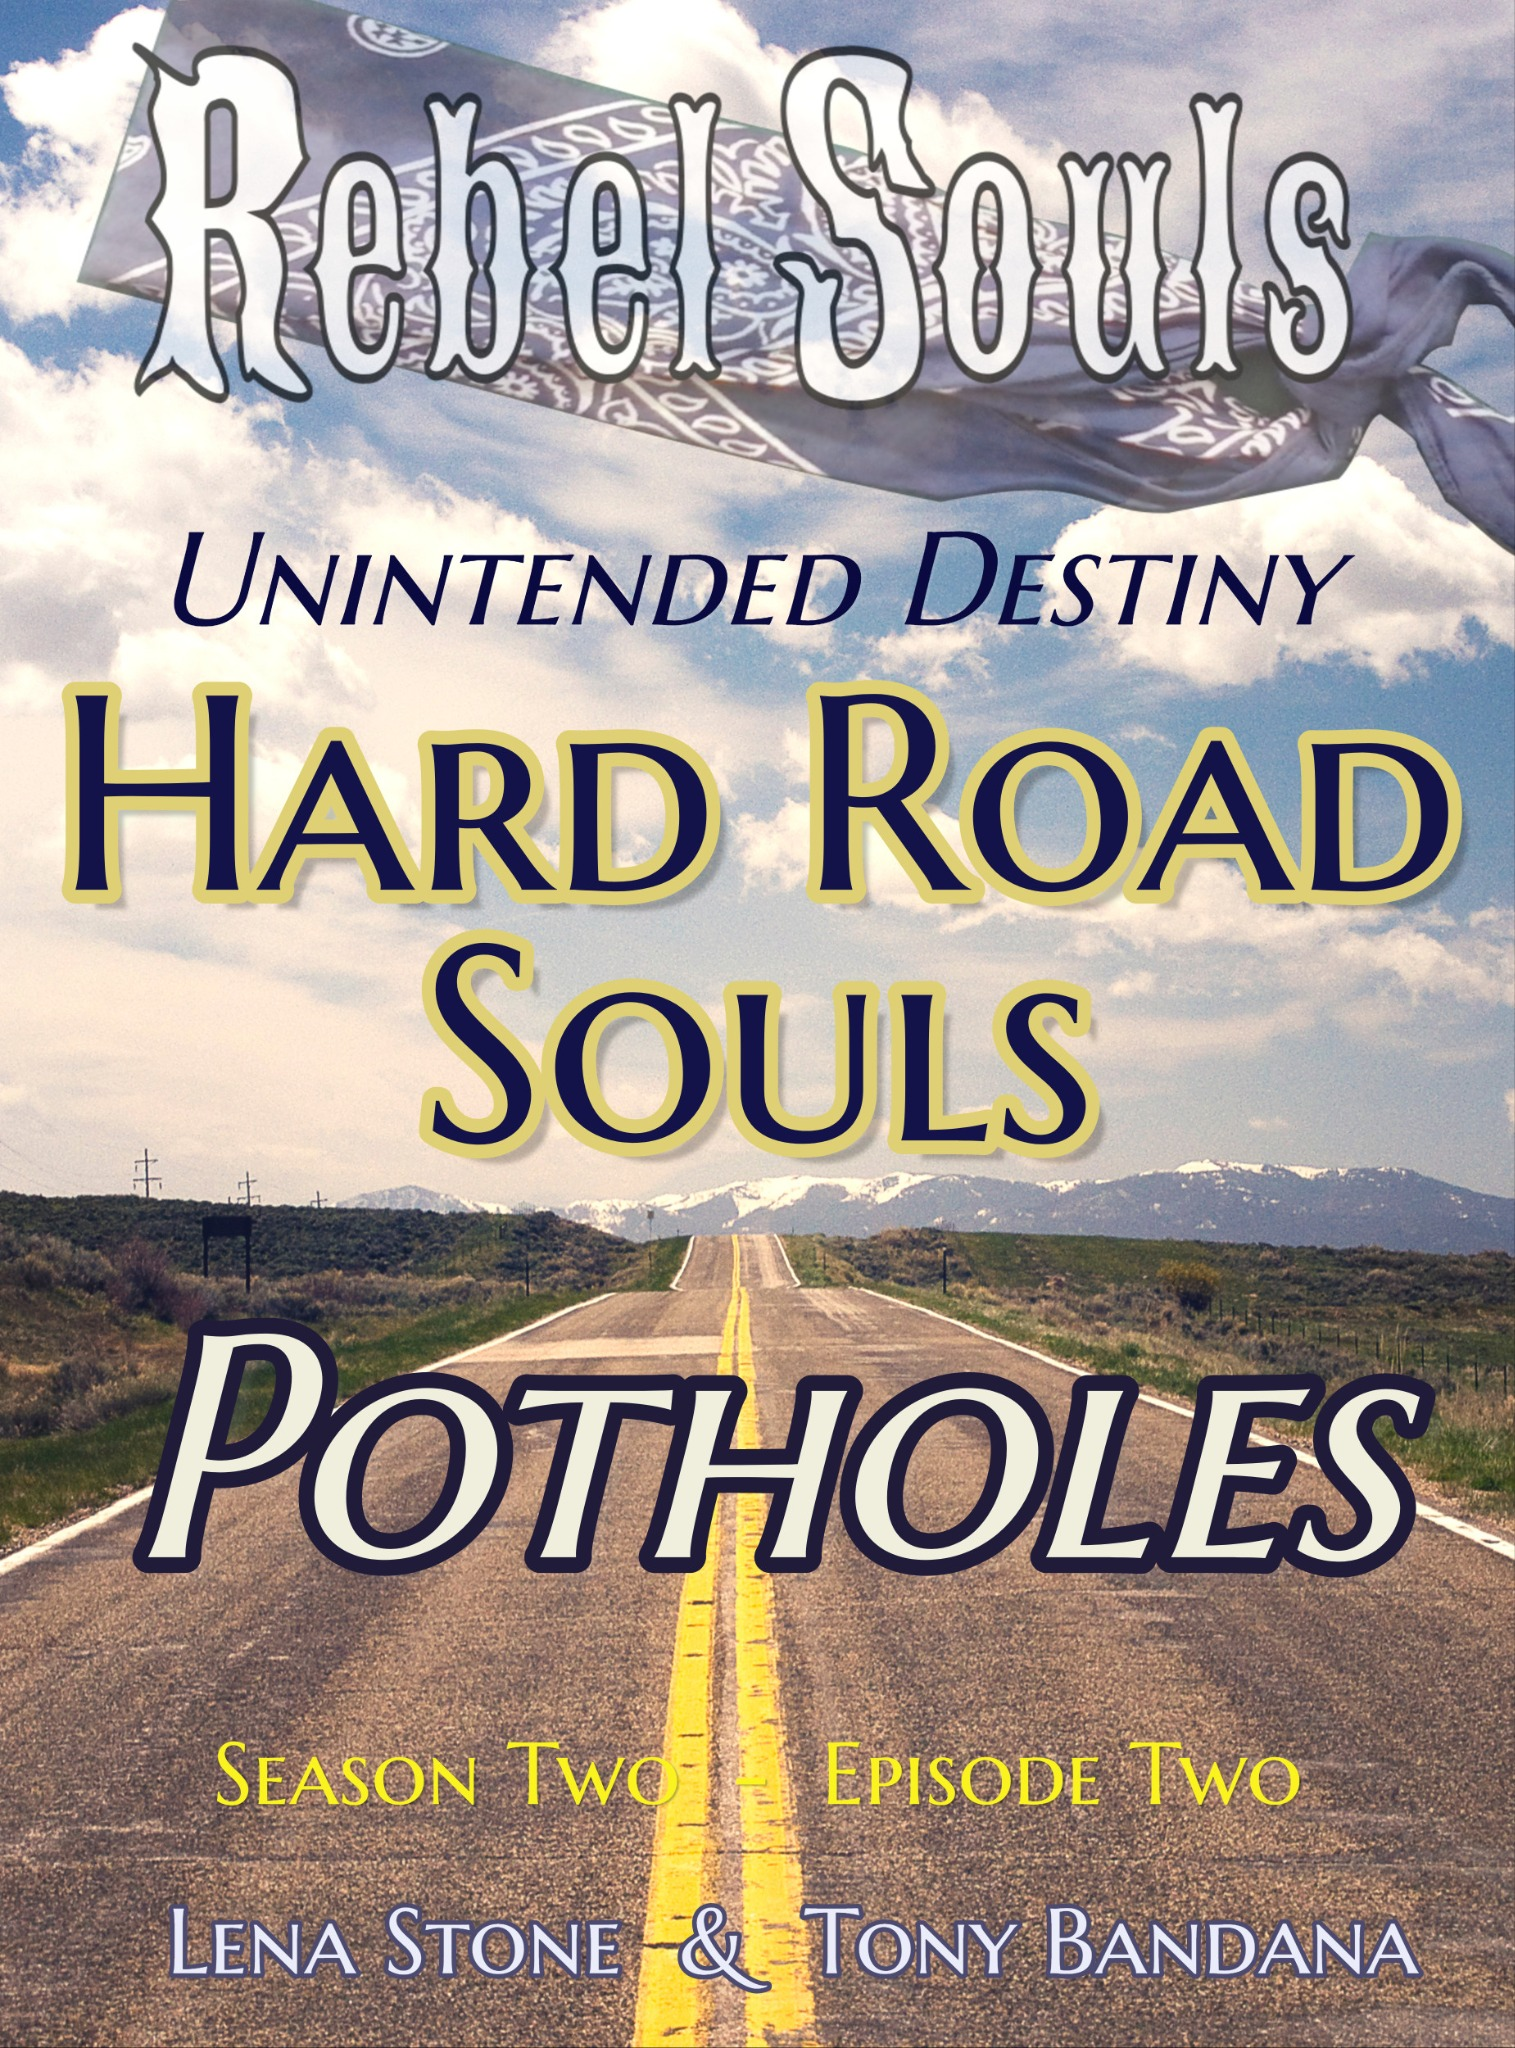 Potholes - Kindle version